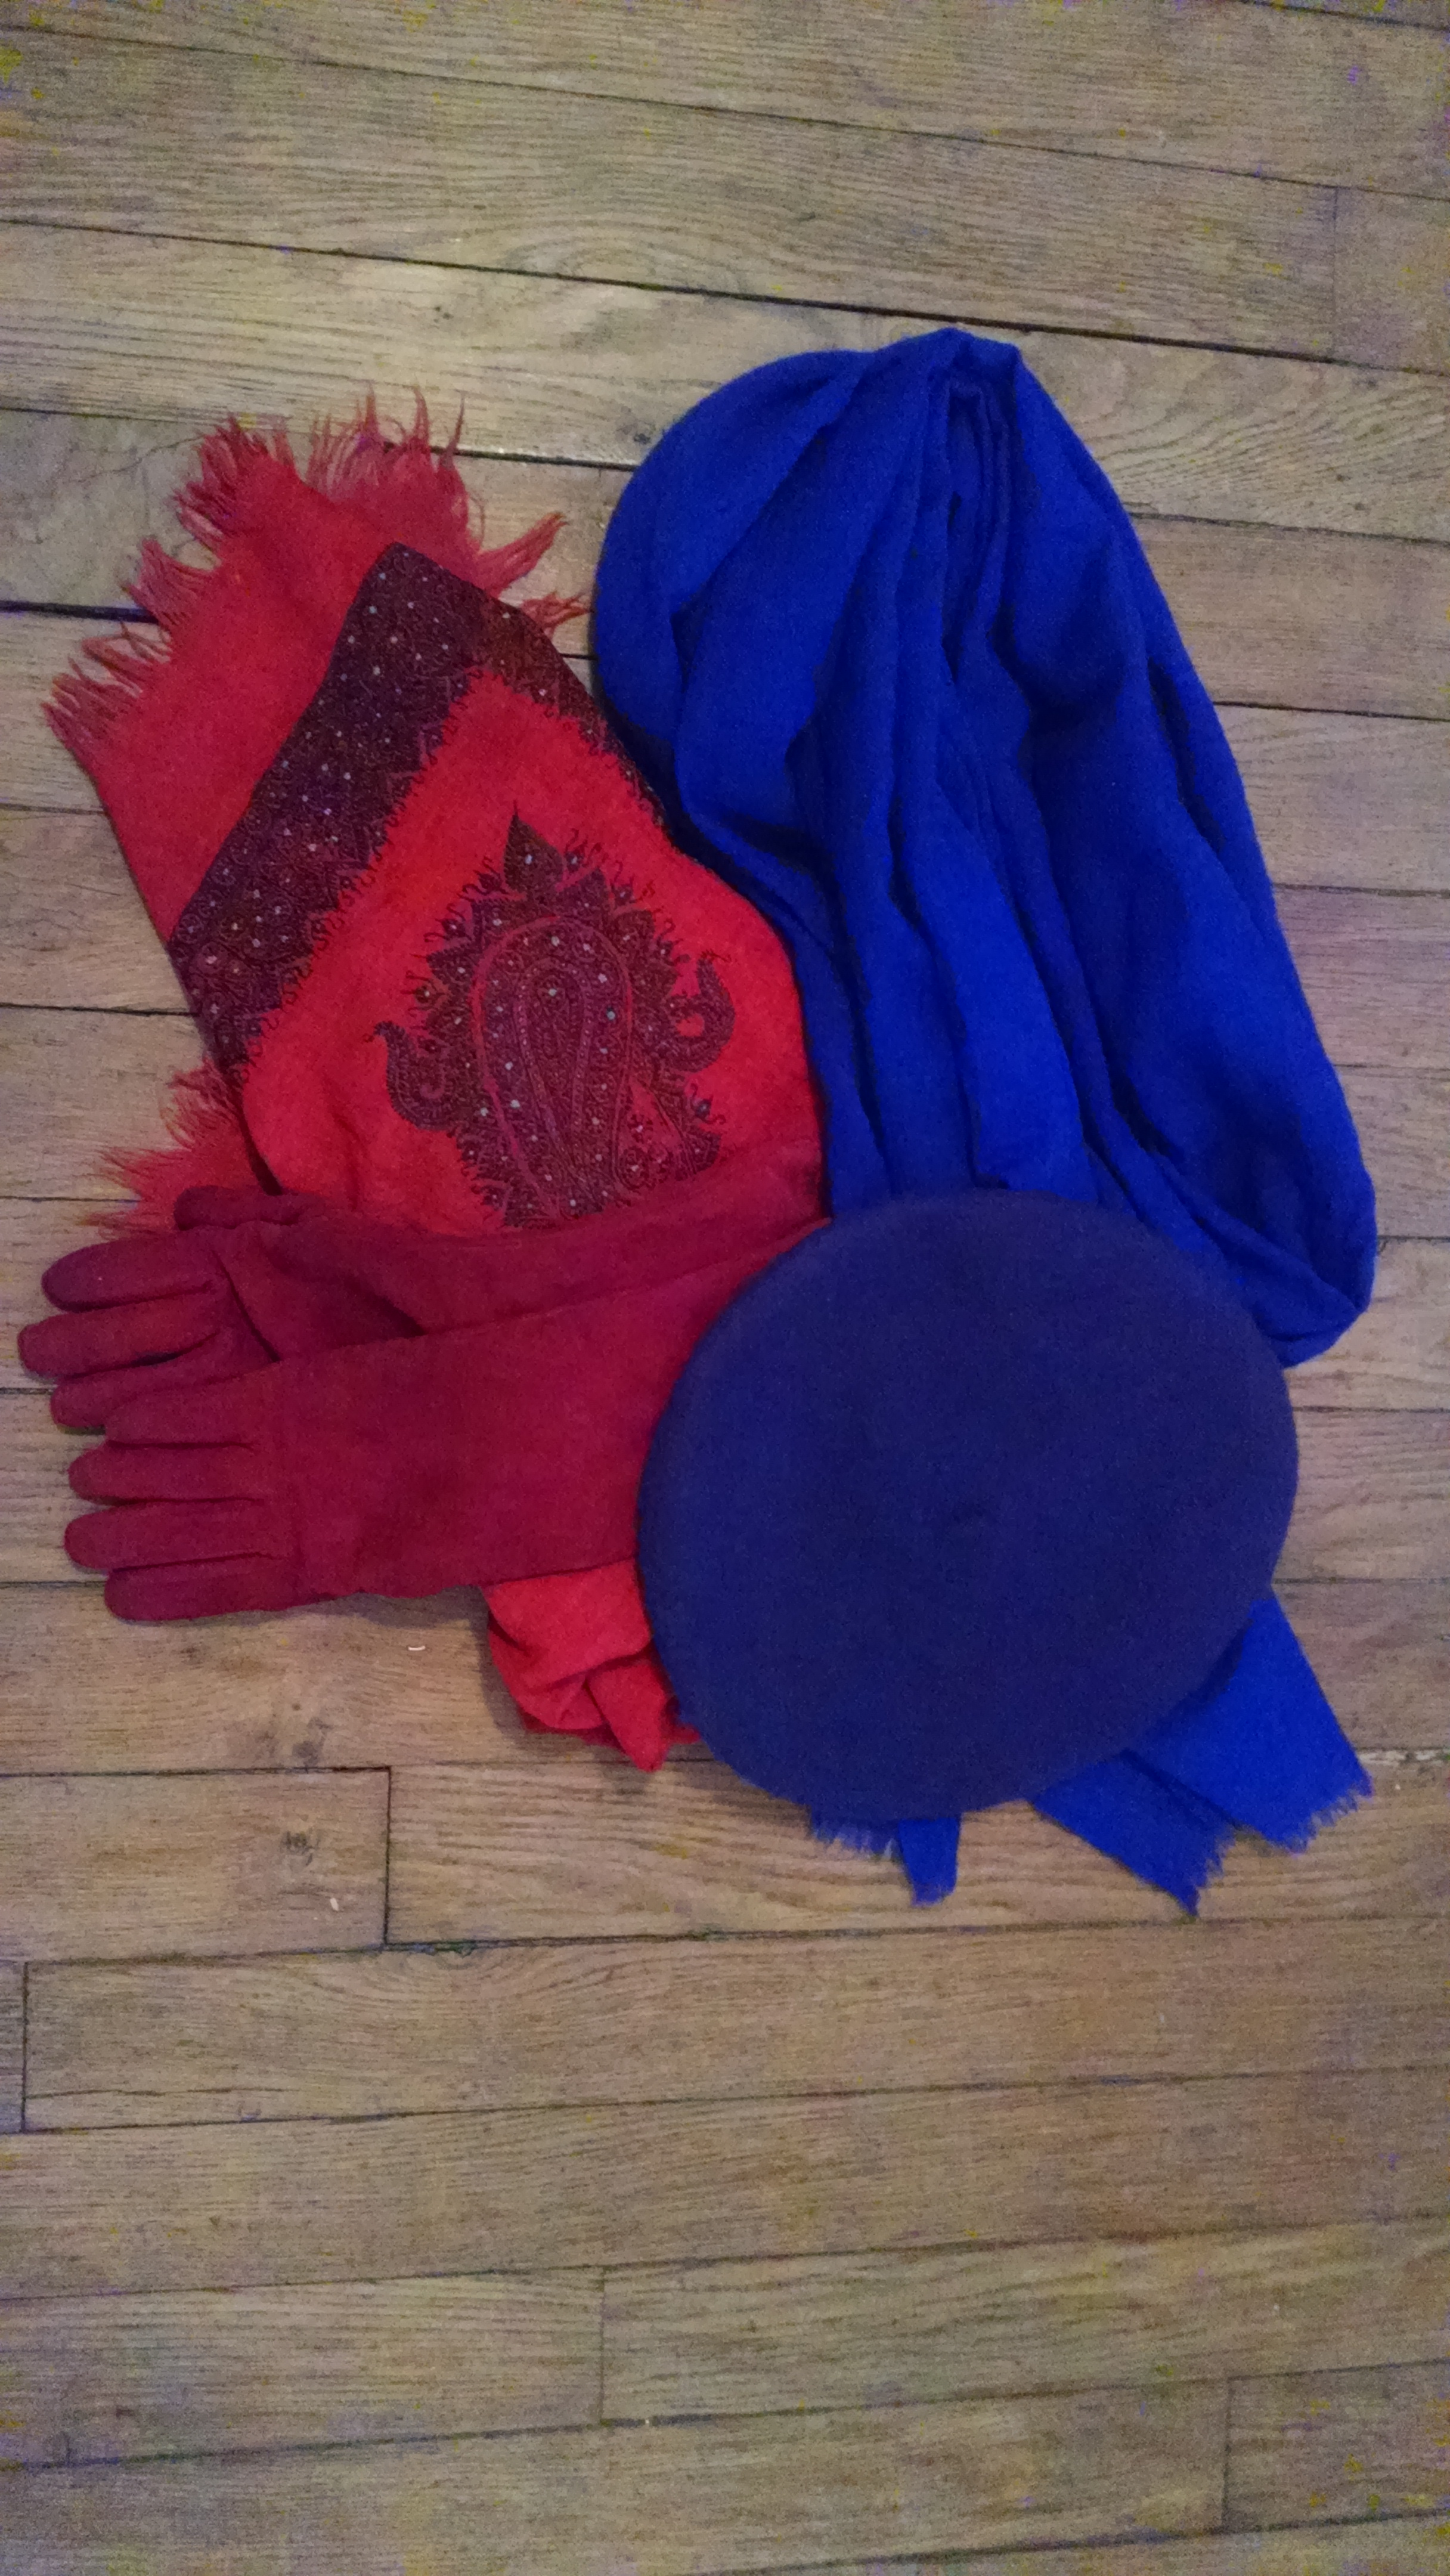 ddc5de4ad5592 Antique cashmere shawl  red suede wool-lined